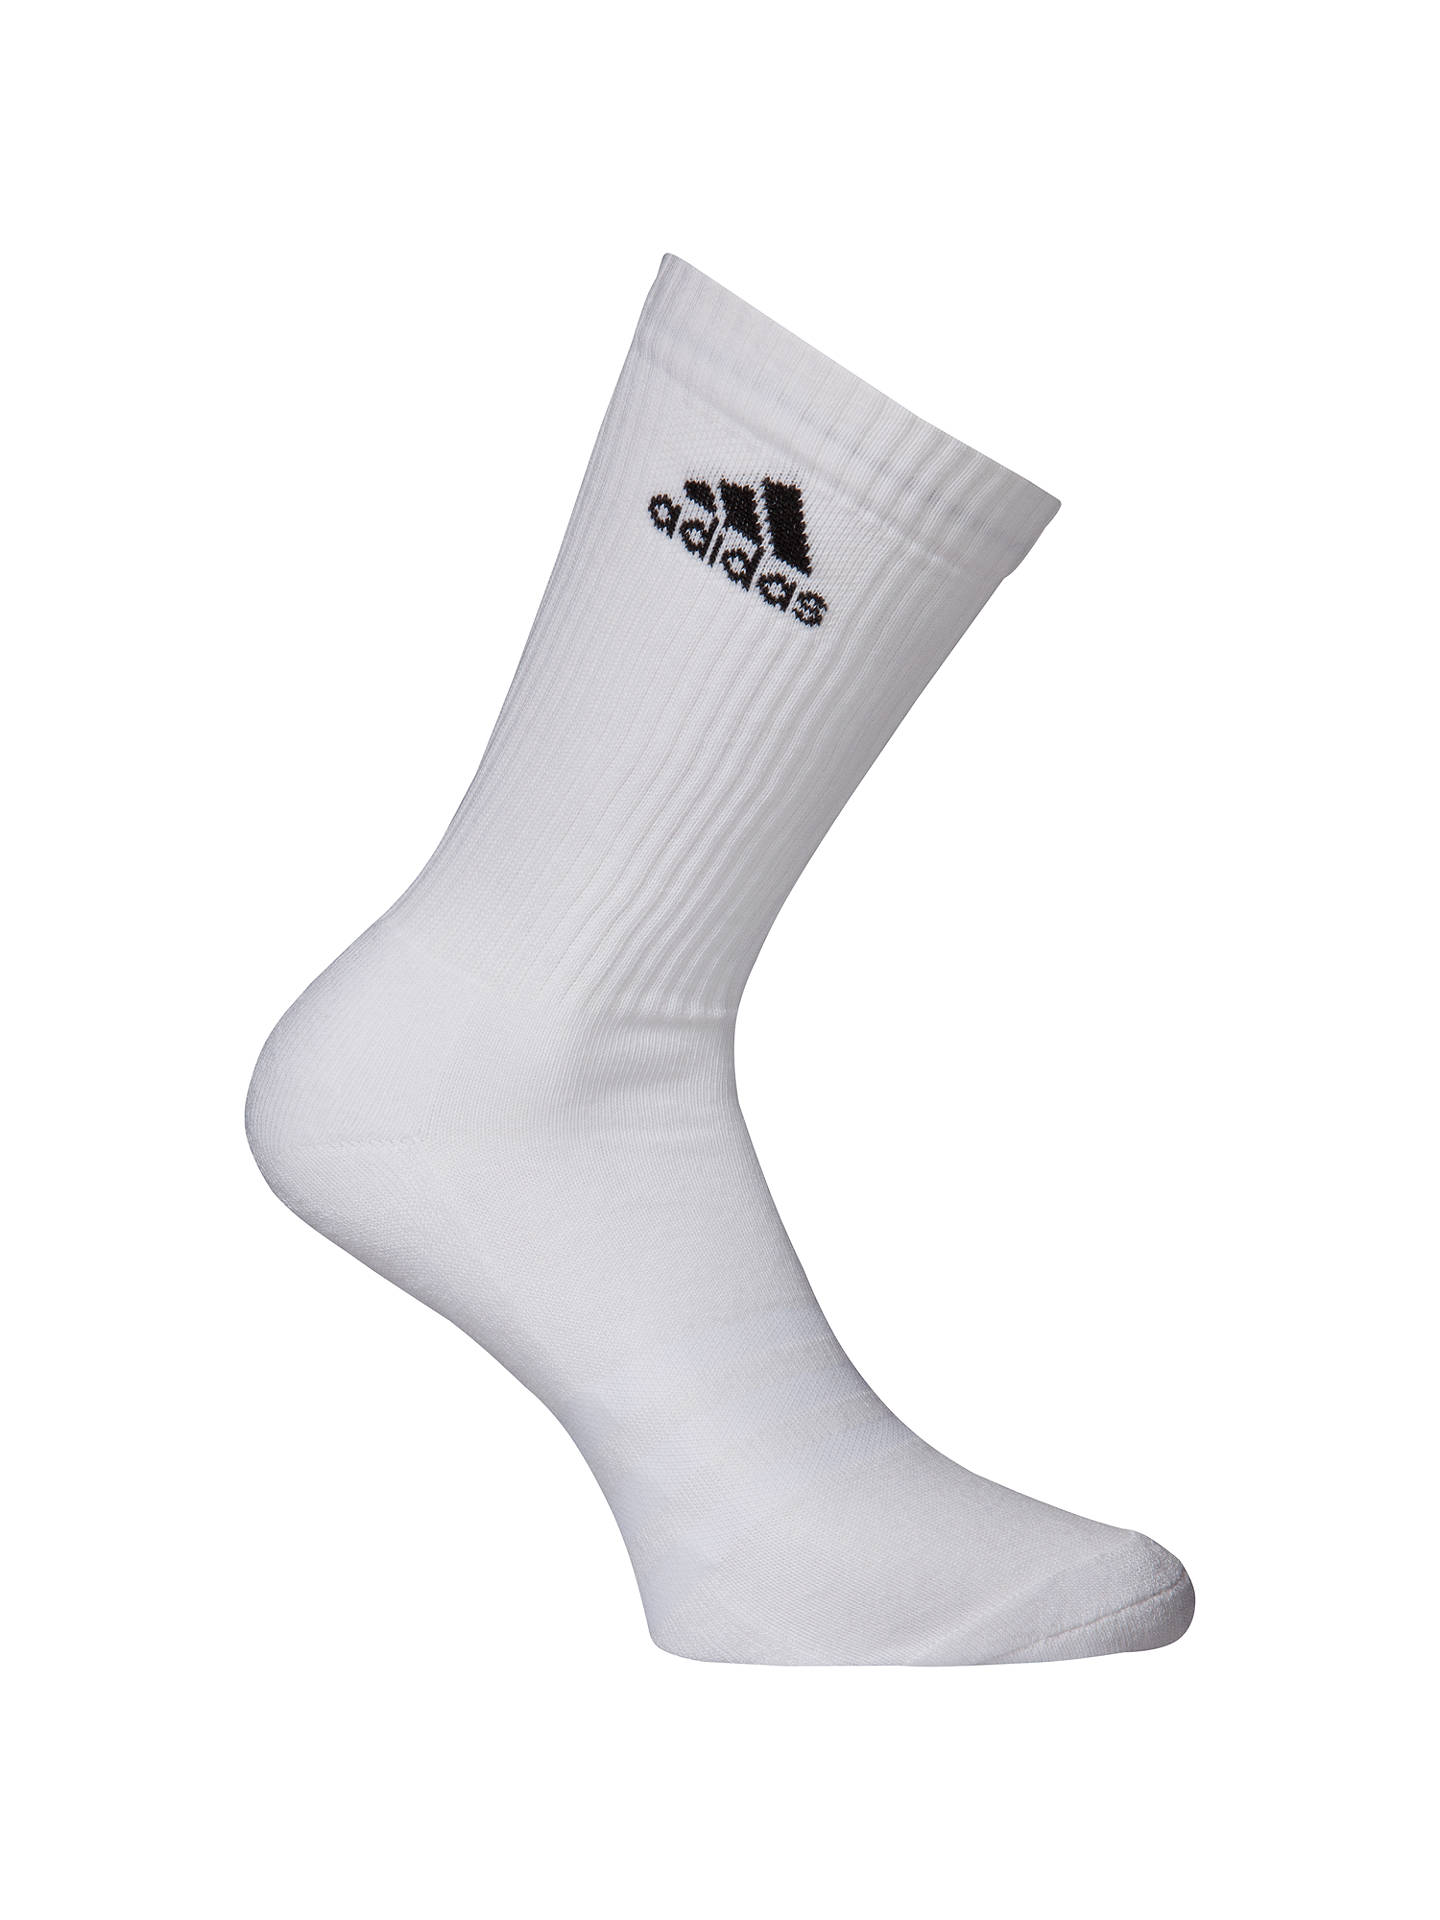 Buyadidas 3-Stripe Performance Crew Socks, Pack of 6, White, S-M Online at johnlewis.com